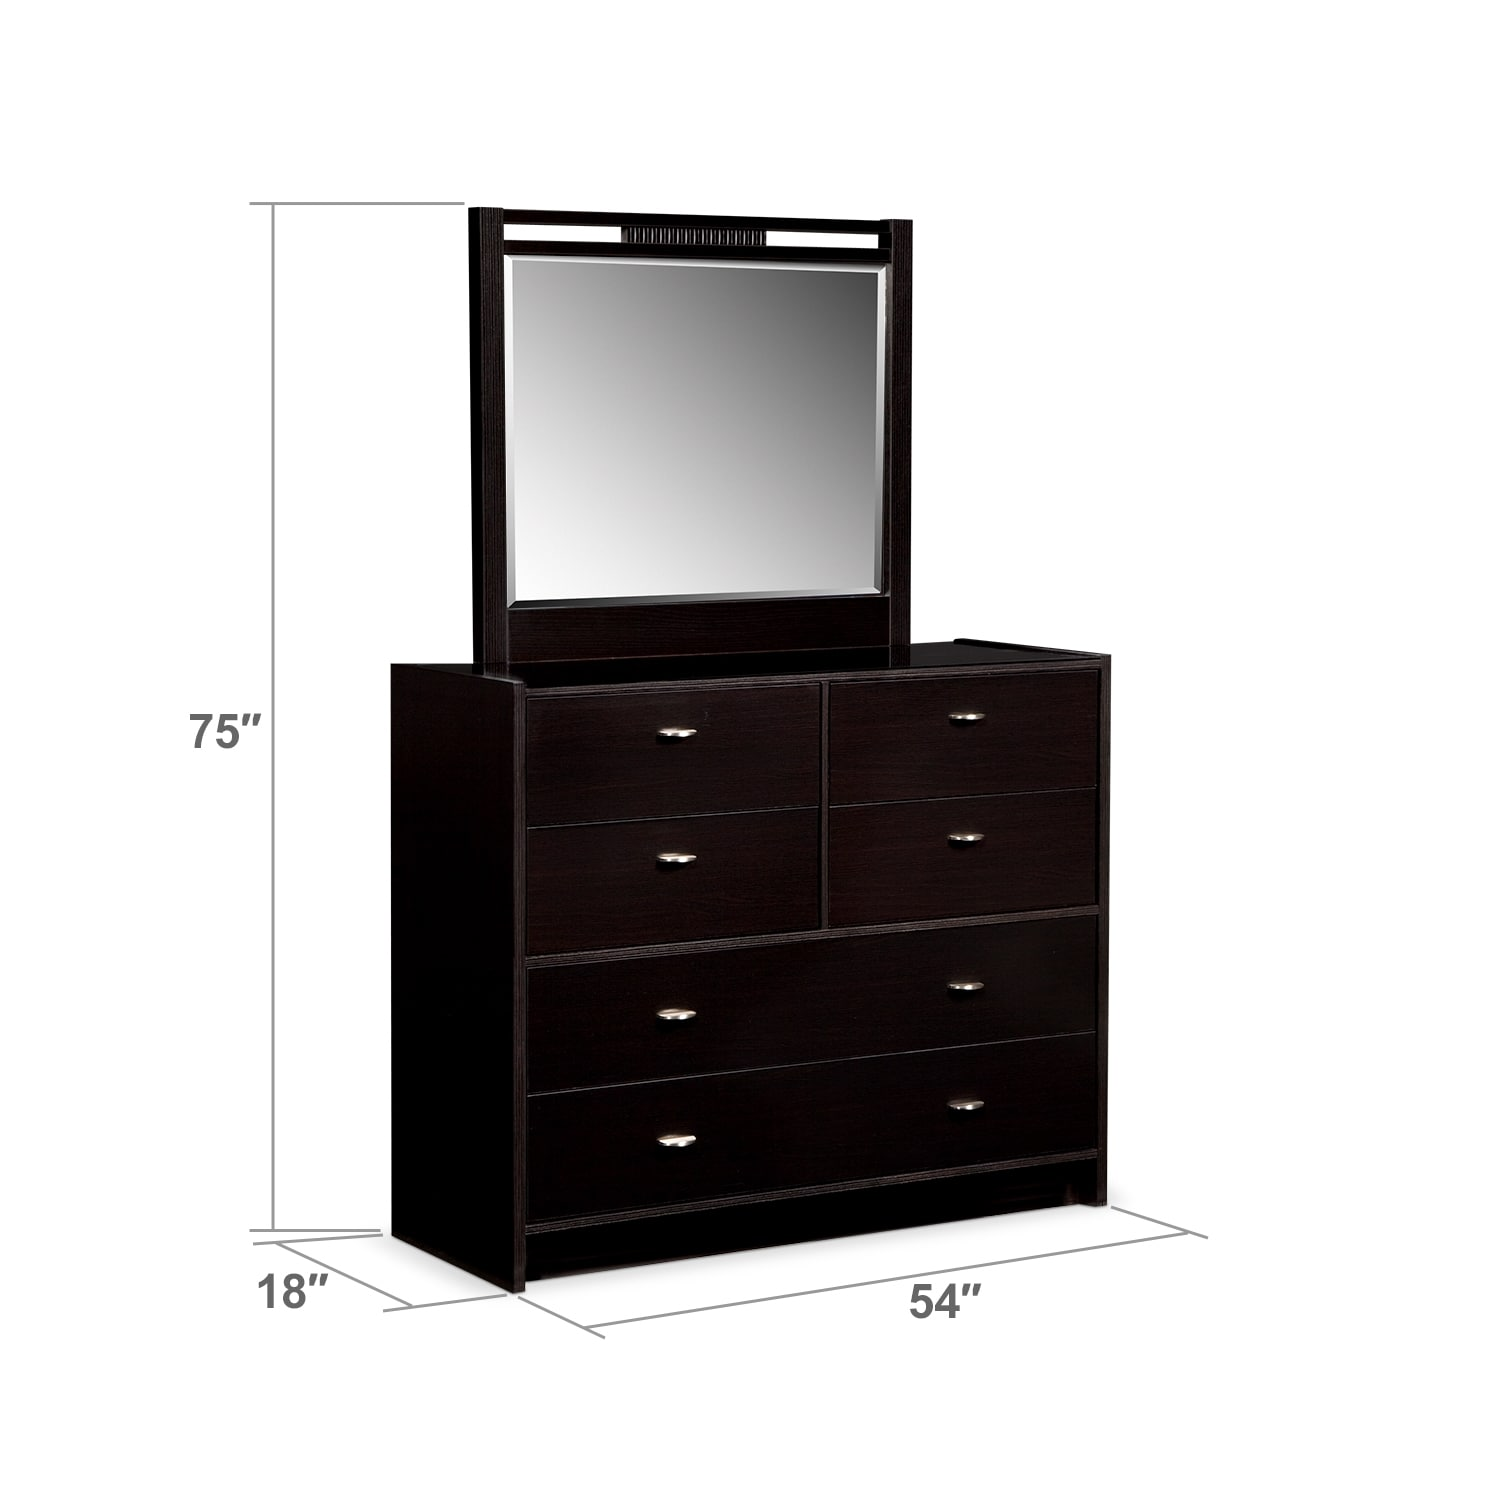 Bedroom Furniture - Bally Dresser and Mirror - Espresso